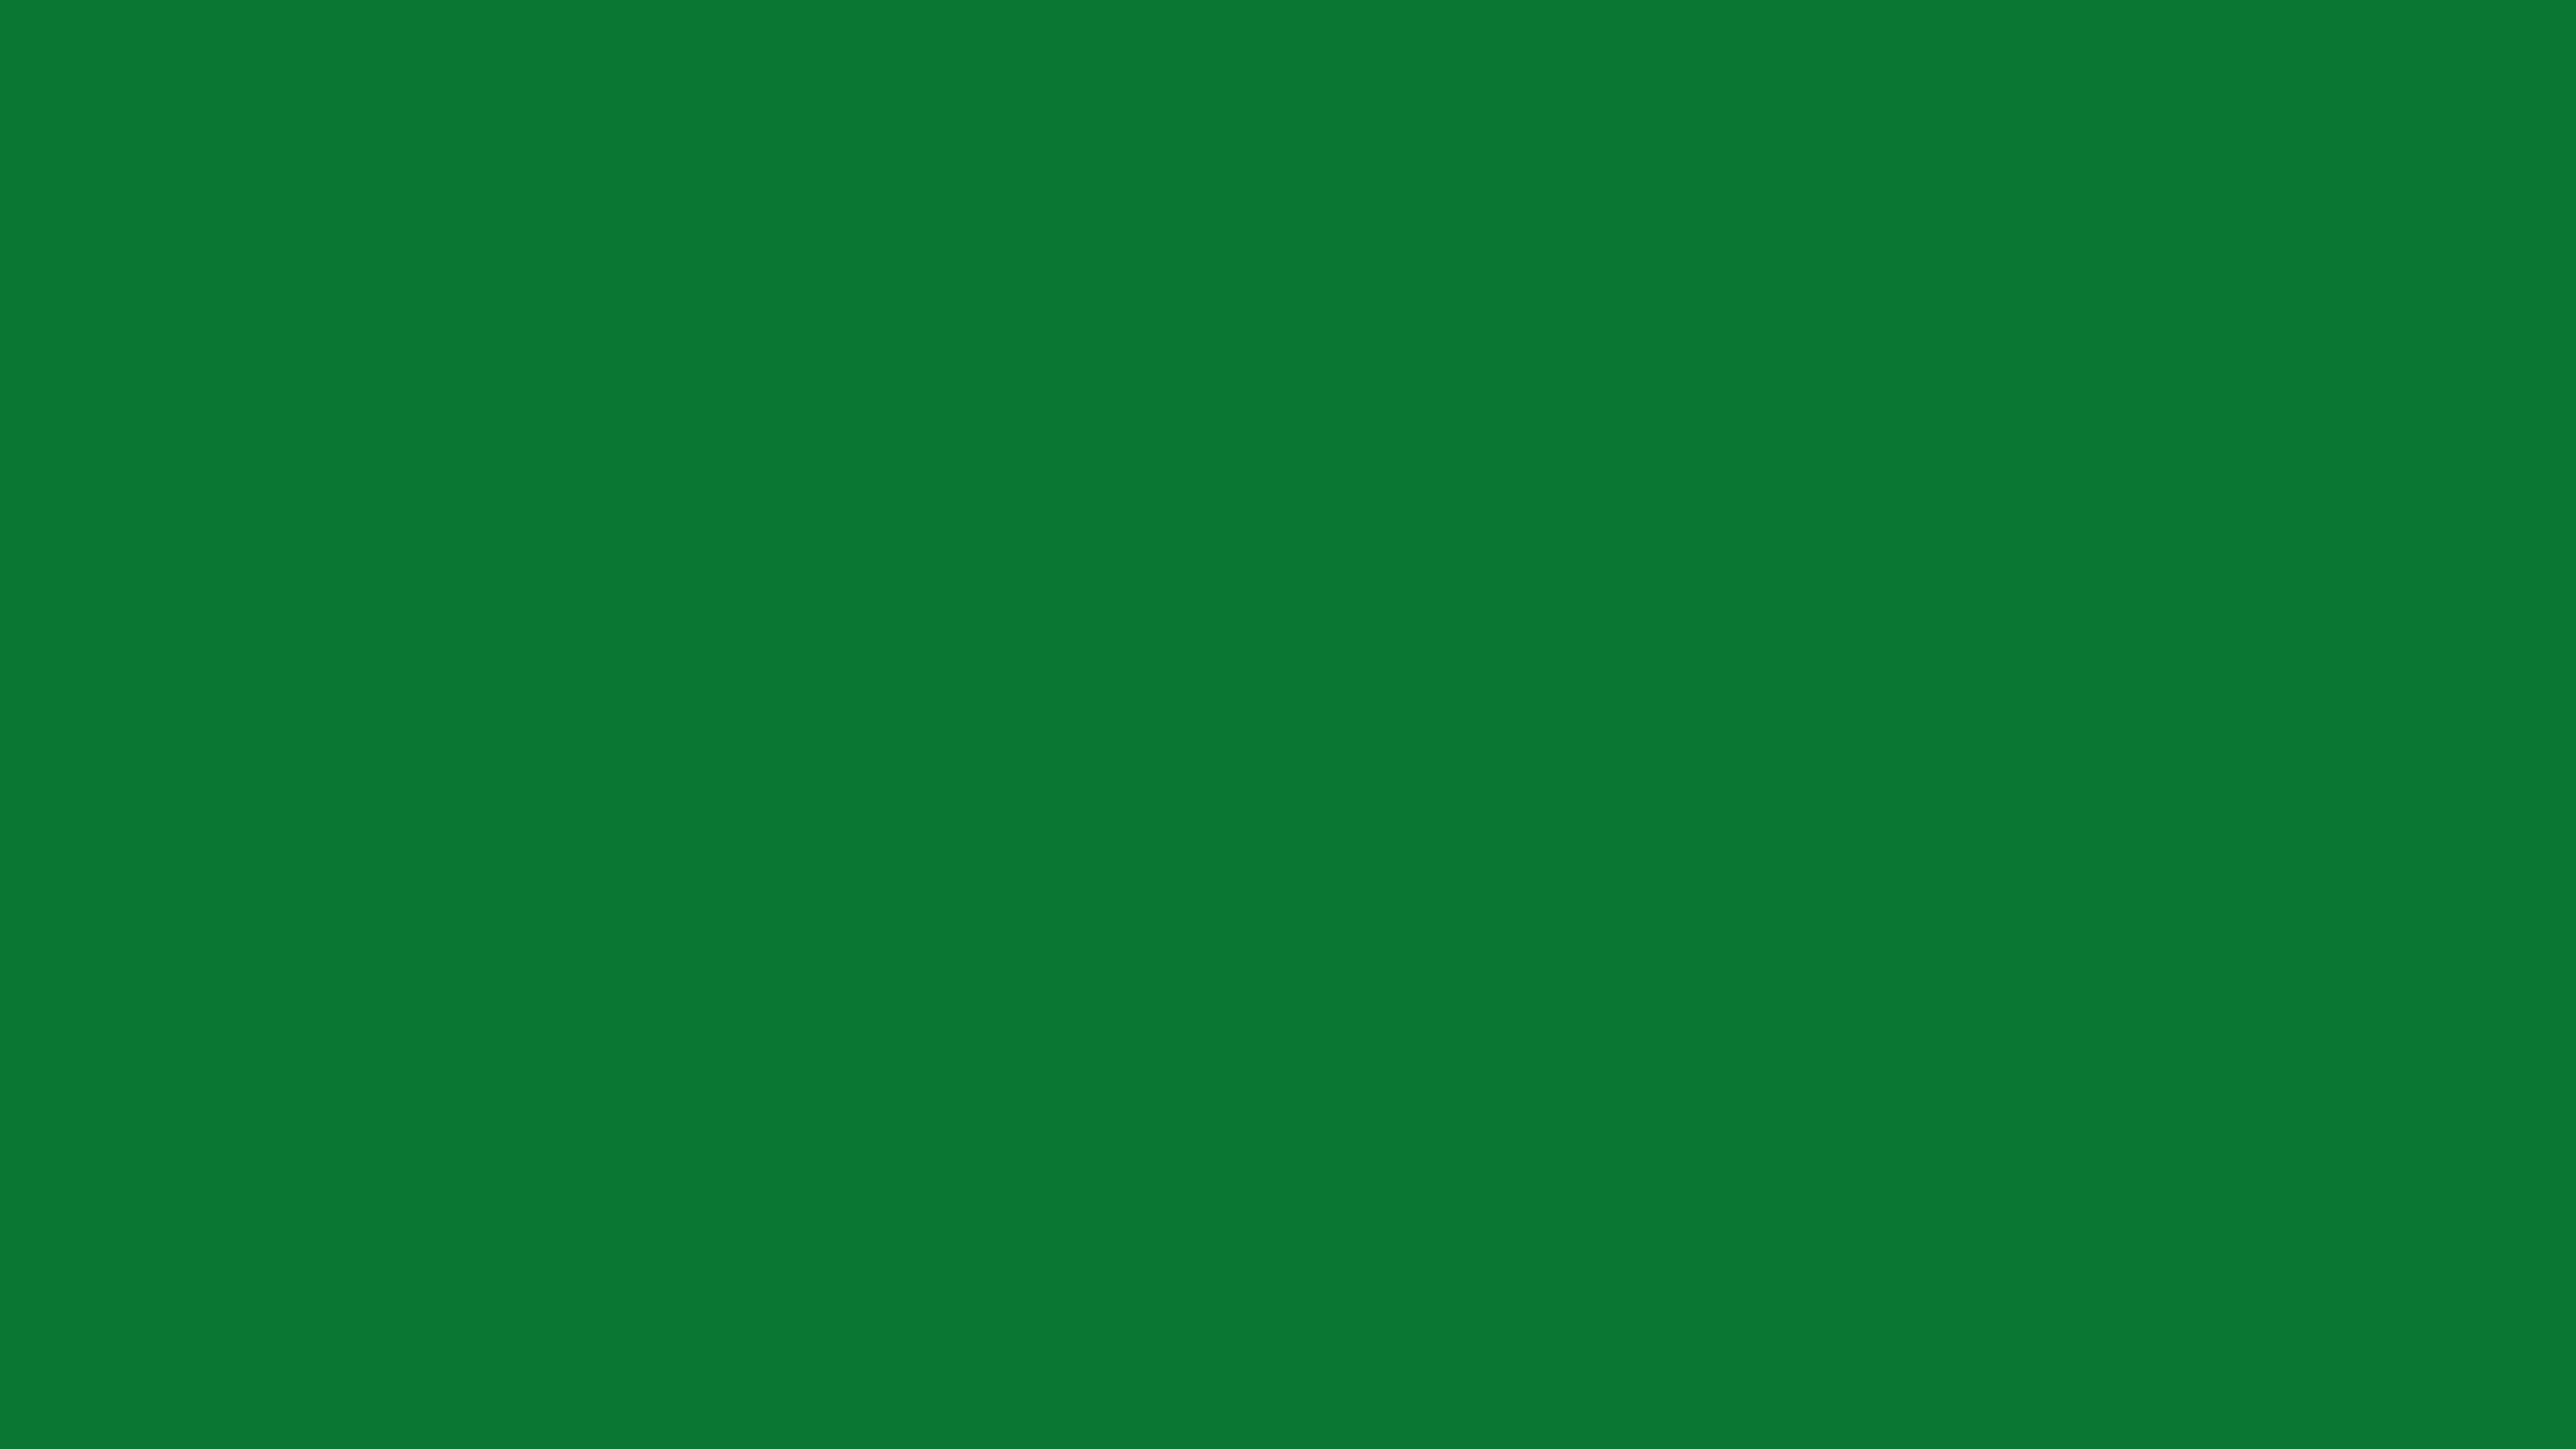 5120x2880 La Salle Green Solid Color Background